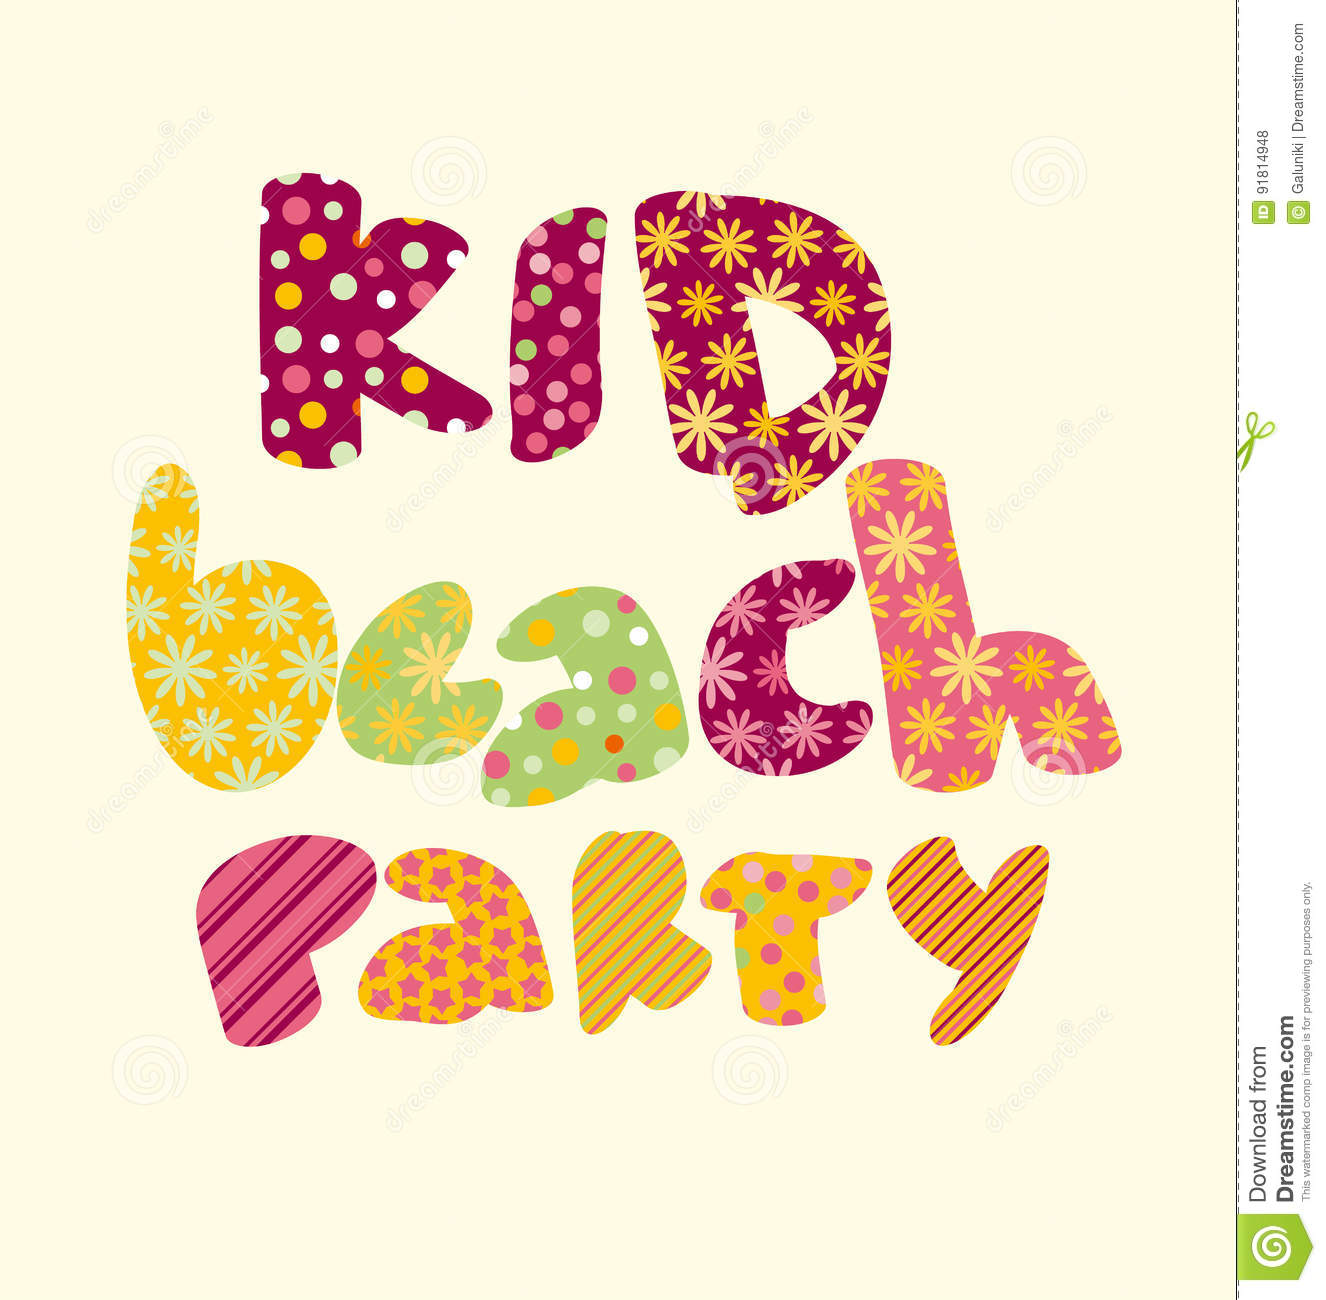 Kid style lettering birthday party vector illustration stock vector kid style lettering birthday party vector illustration bright summer letters for childish header invitation card stopboris Image collections